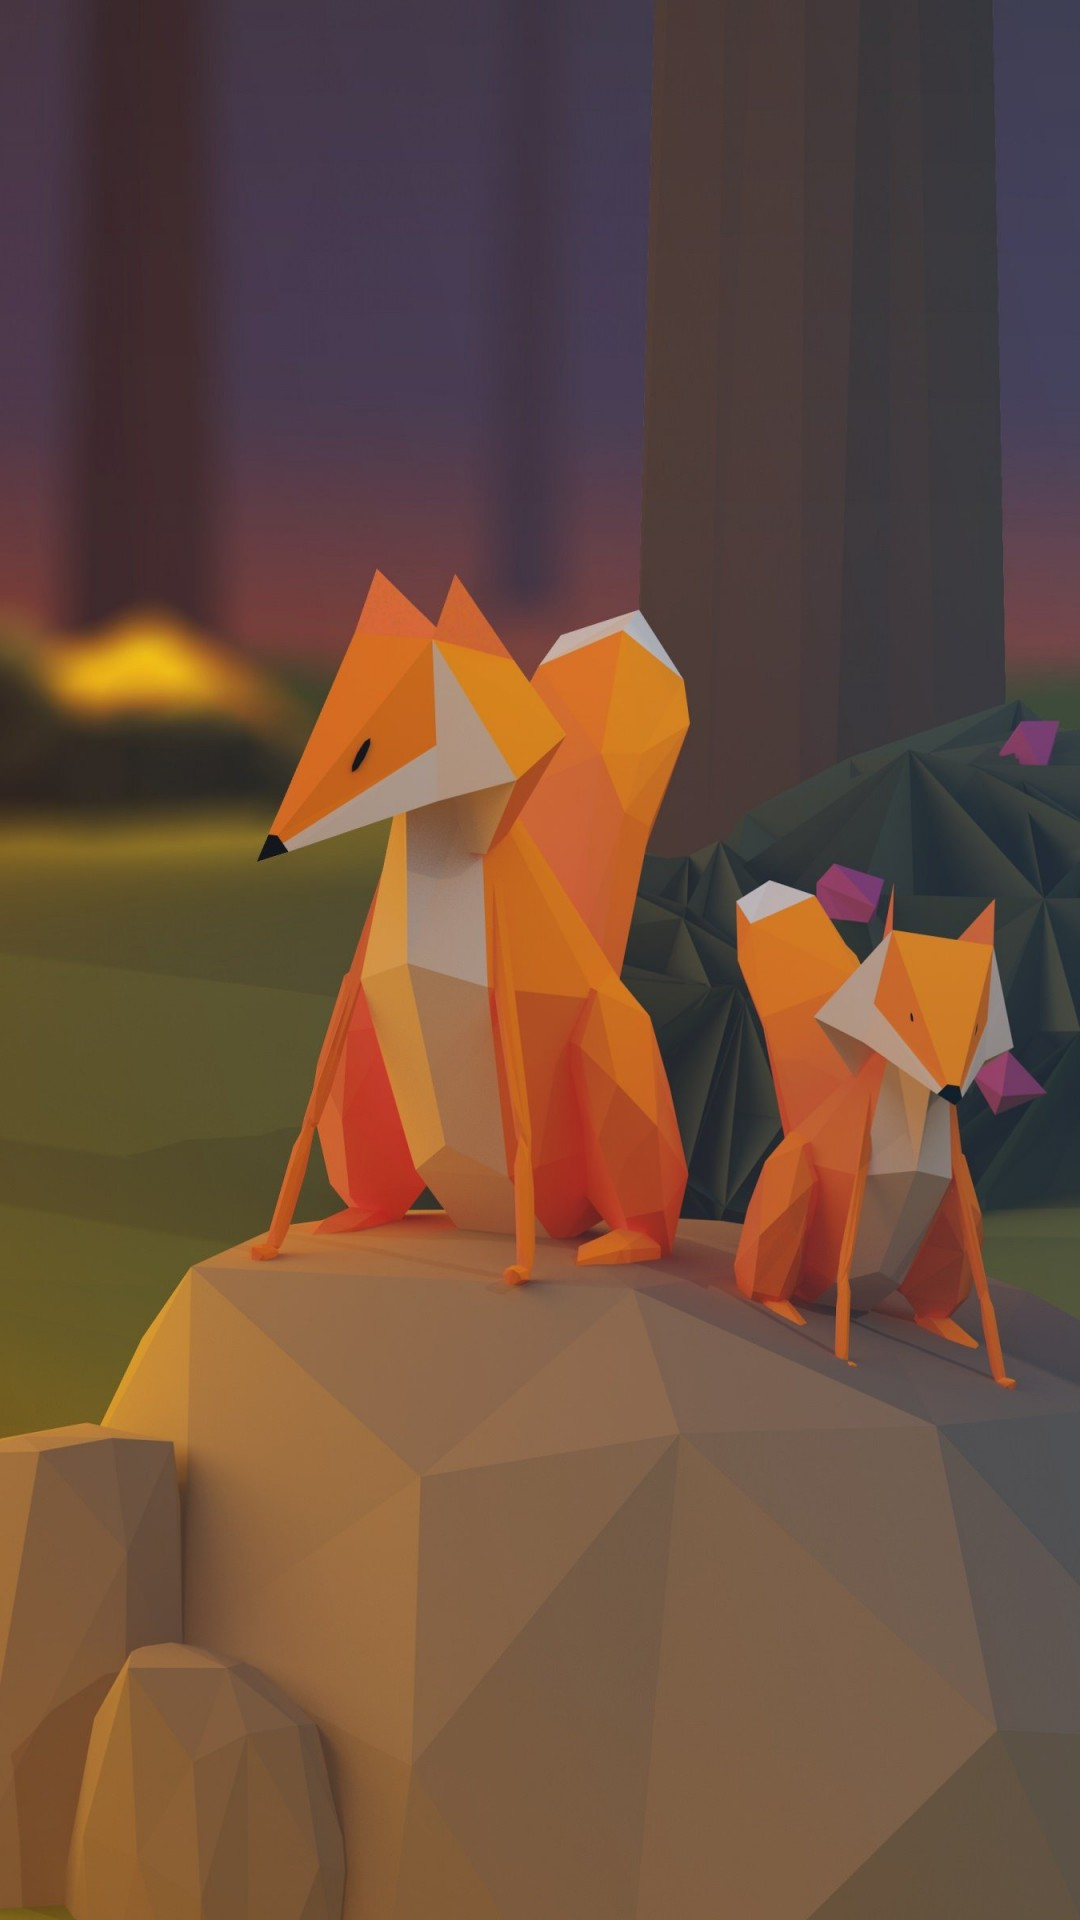 Low Poly Foxes Wallpaper for SAMSUNG Galaxy Note 3